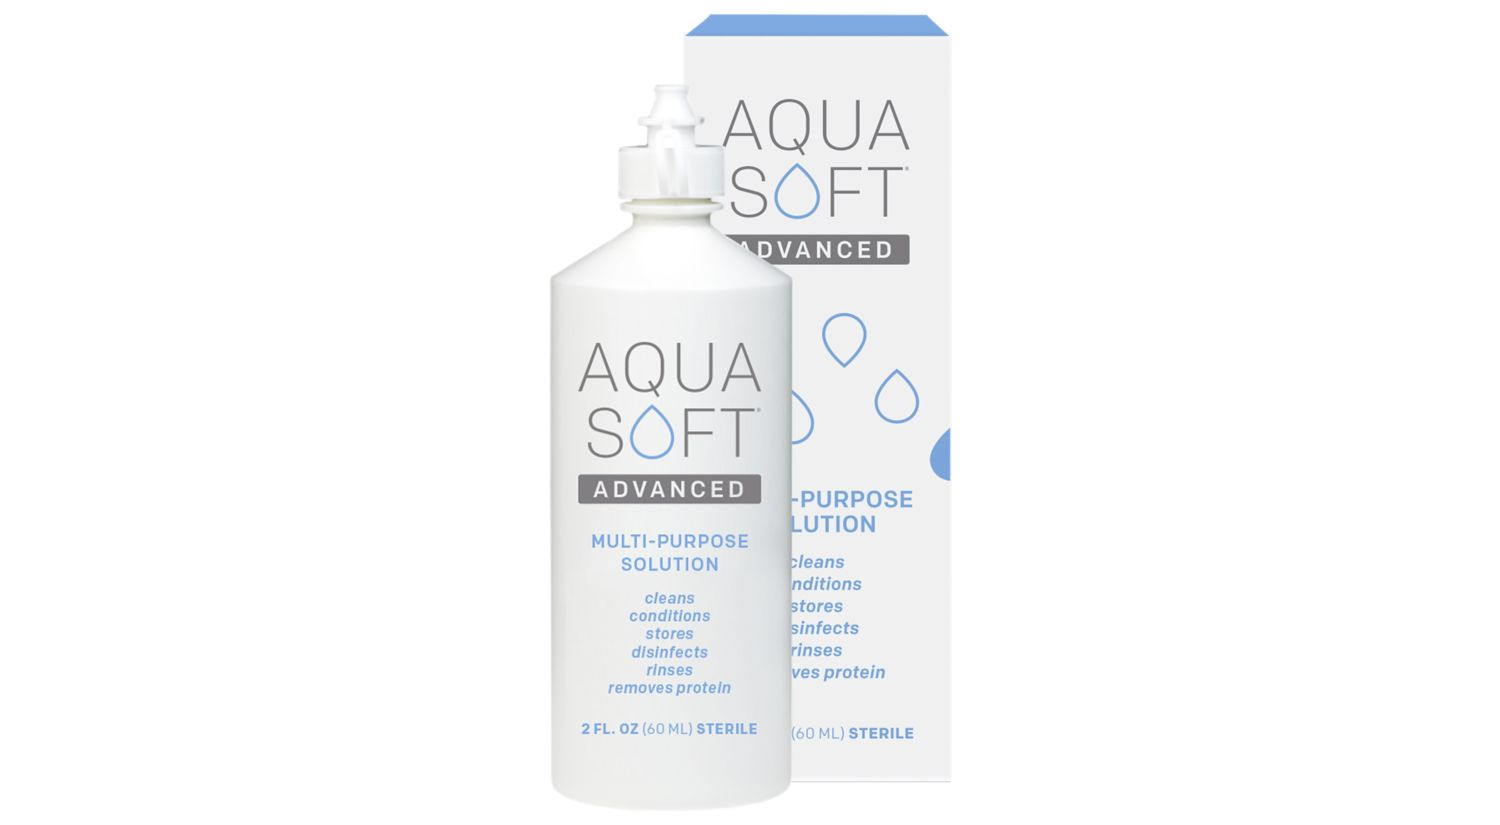 Aquasoft Advanced Travel Size